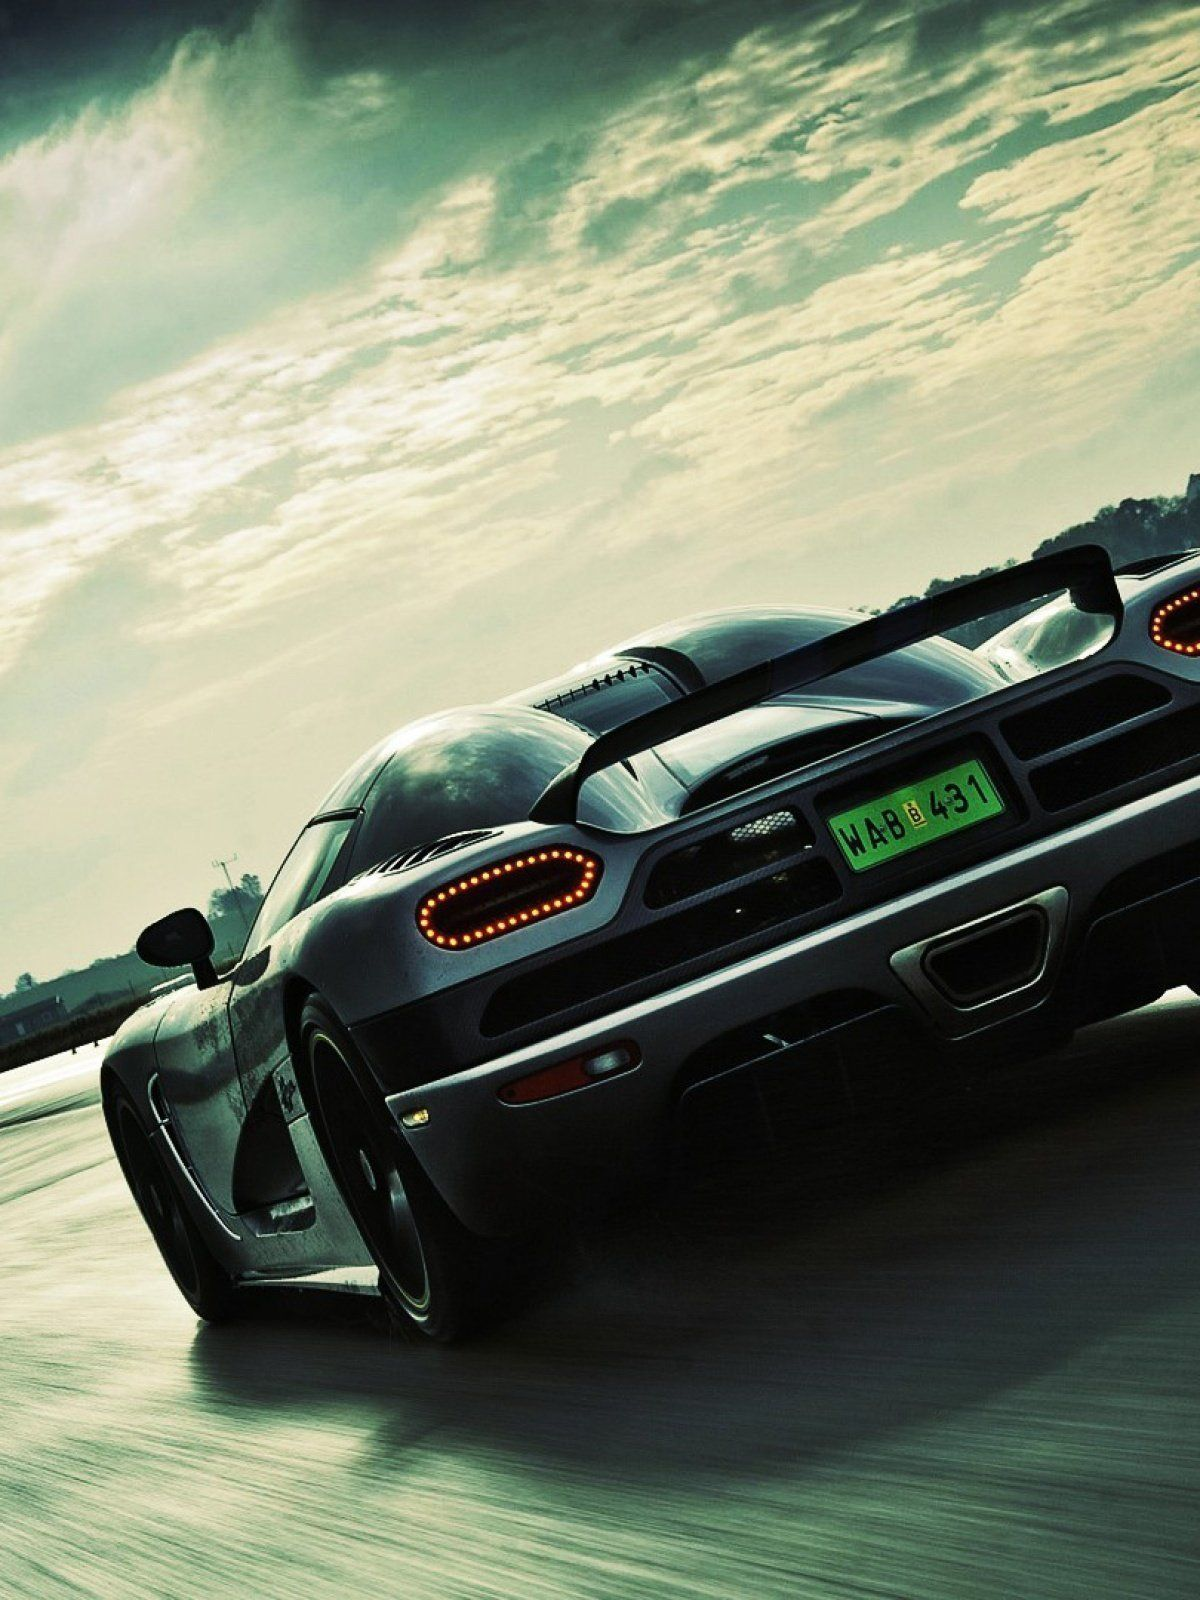 Freedownload Supercars Wallpaper Download Android Mobile Clouds Iphone Black Free Car And D Supercars Wallpaper Car Iphone Wallpaper Super Cars